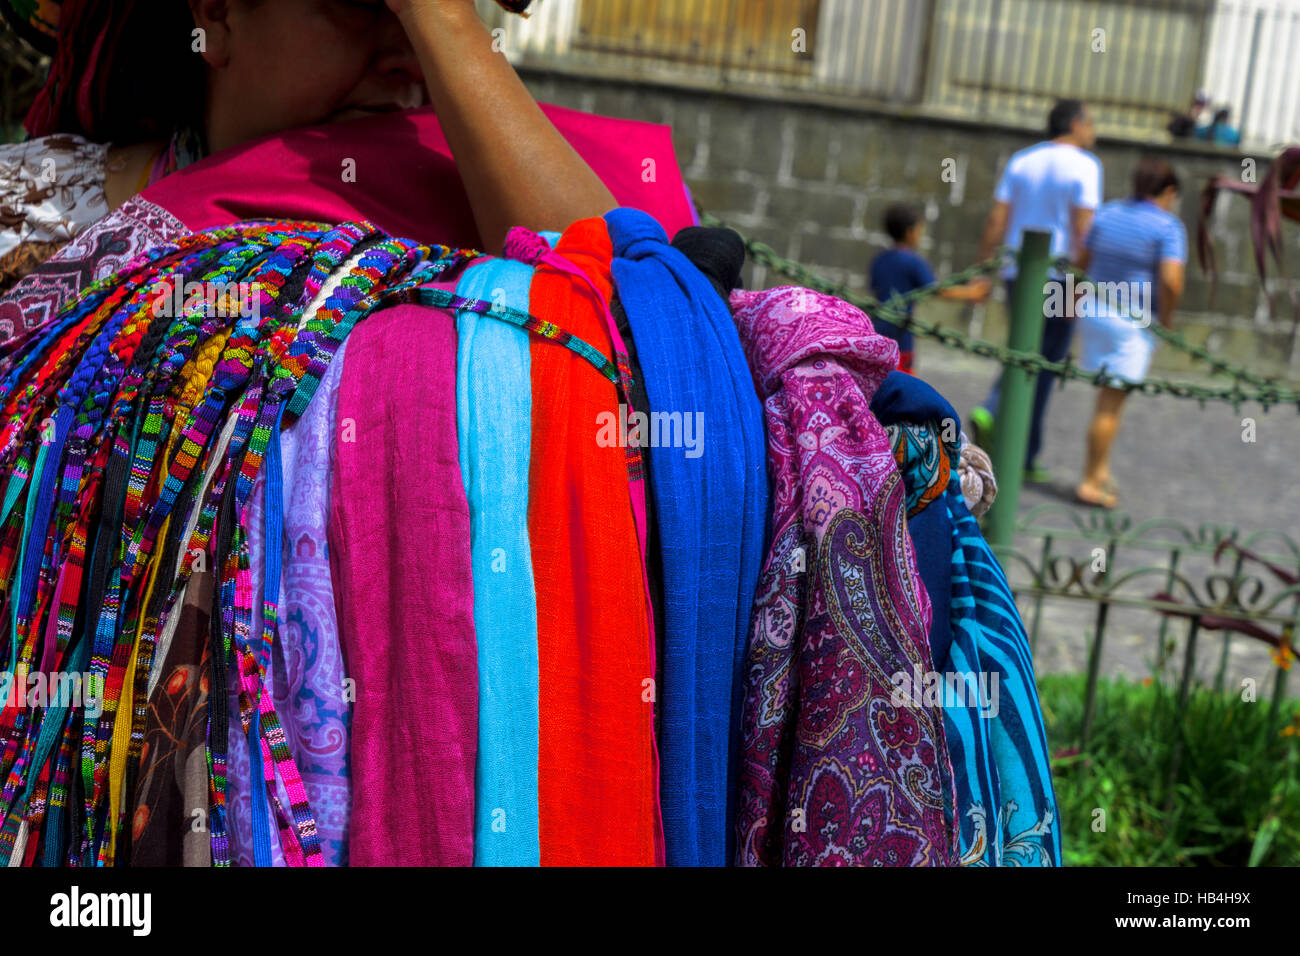 Colourful handmade scarves and beads on the arm of a Guatemalan woman closeup - Stock Image